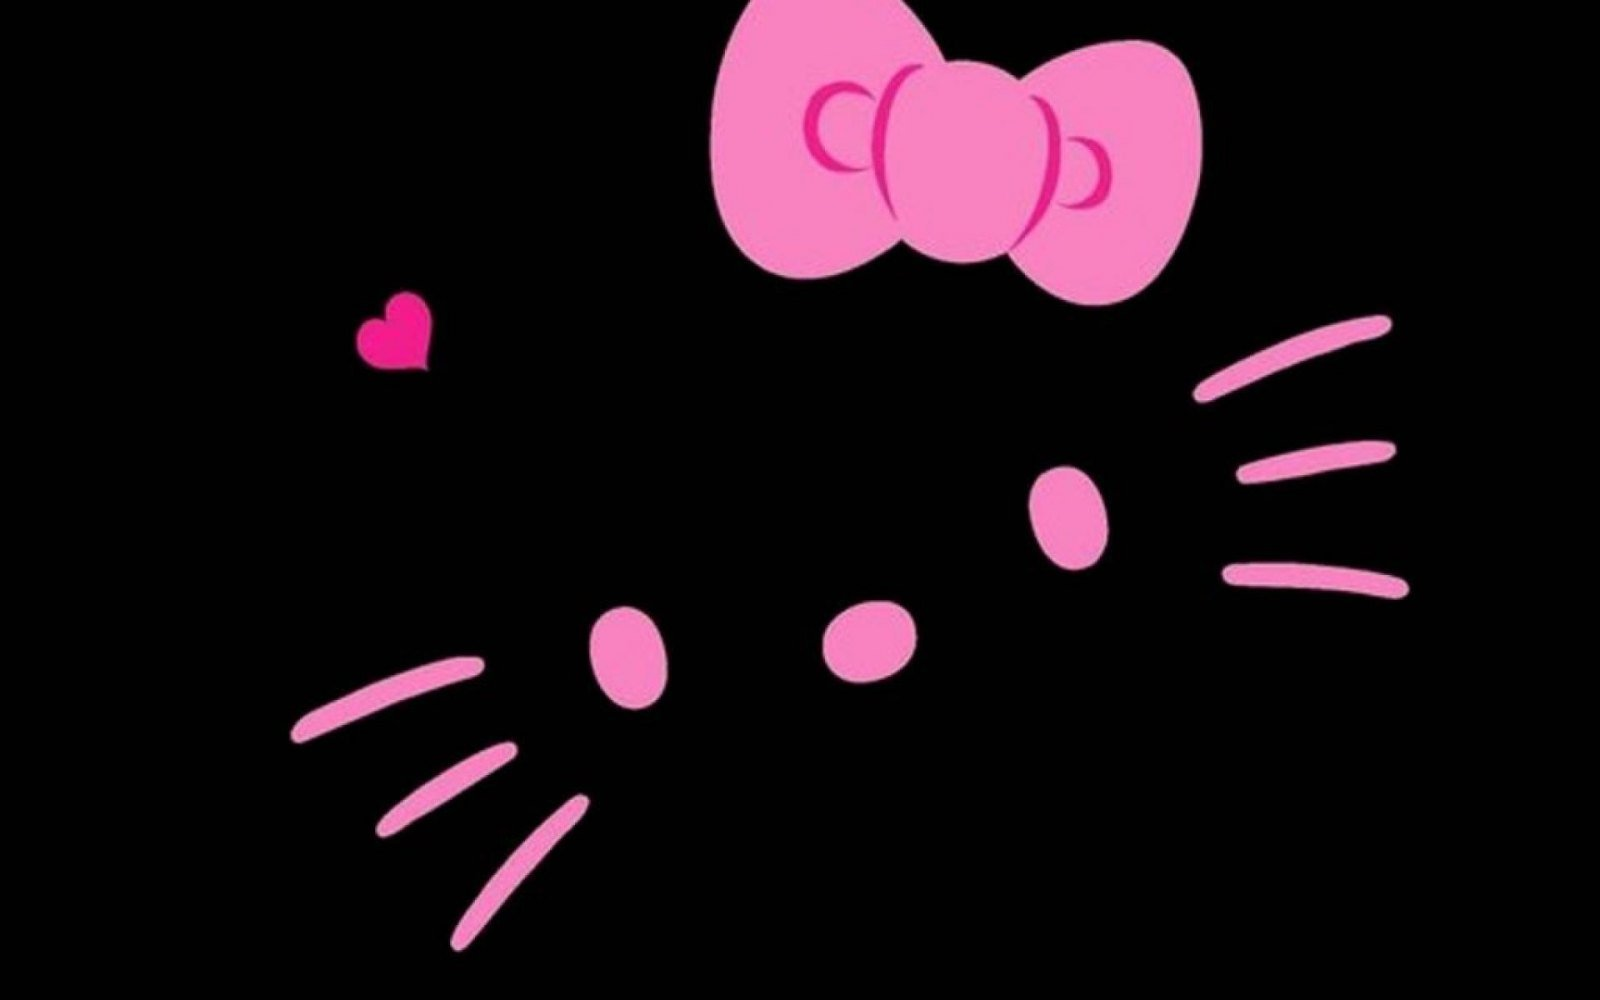 Fondo negro de Hello Kitty